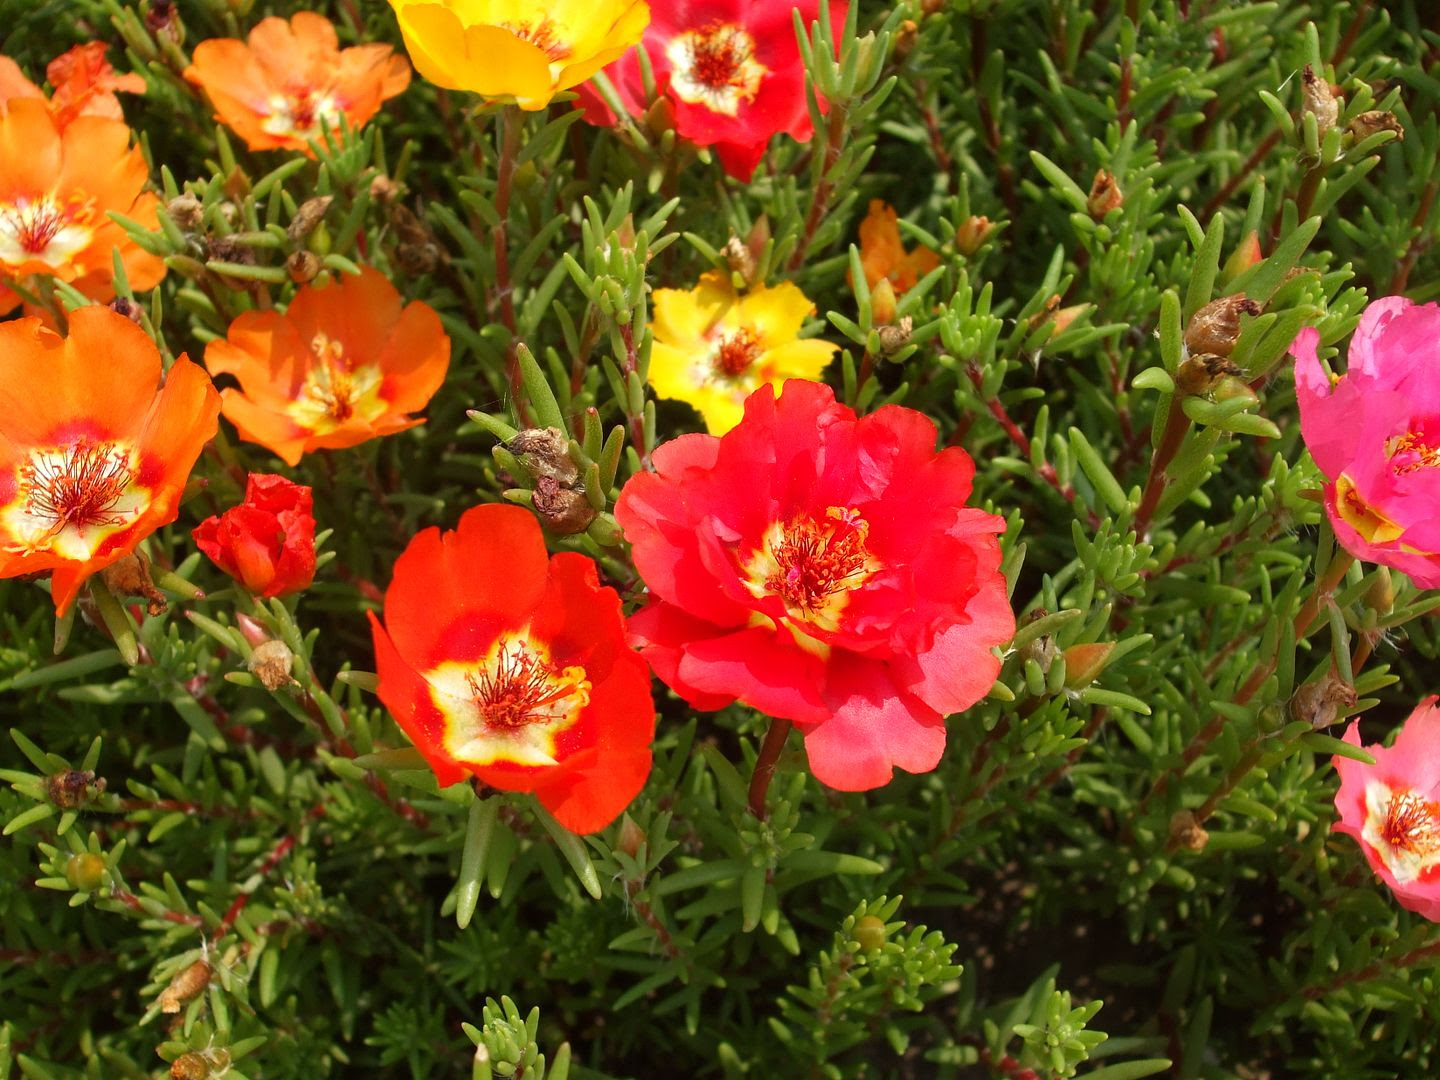 Portulaca by Angie Ouellette-Tower photo DSCF0912_zps02a53191.jpg